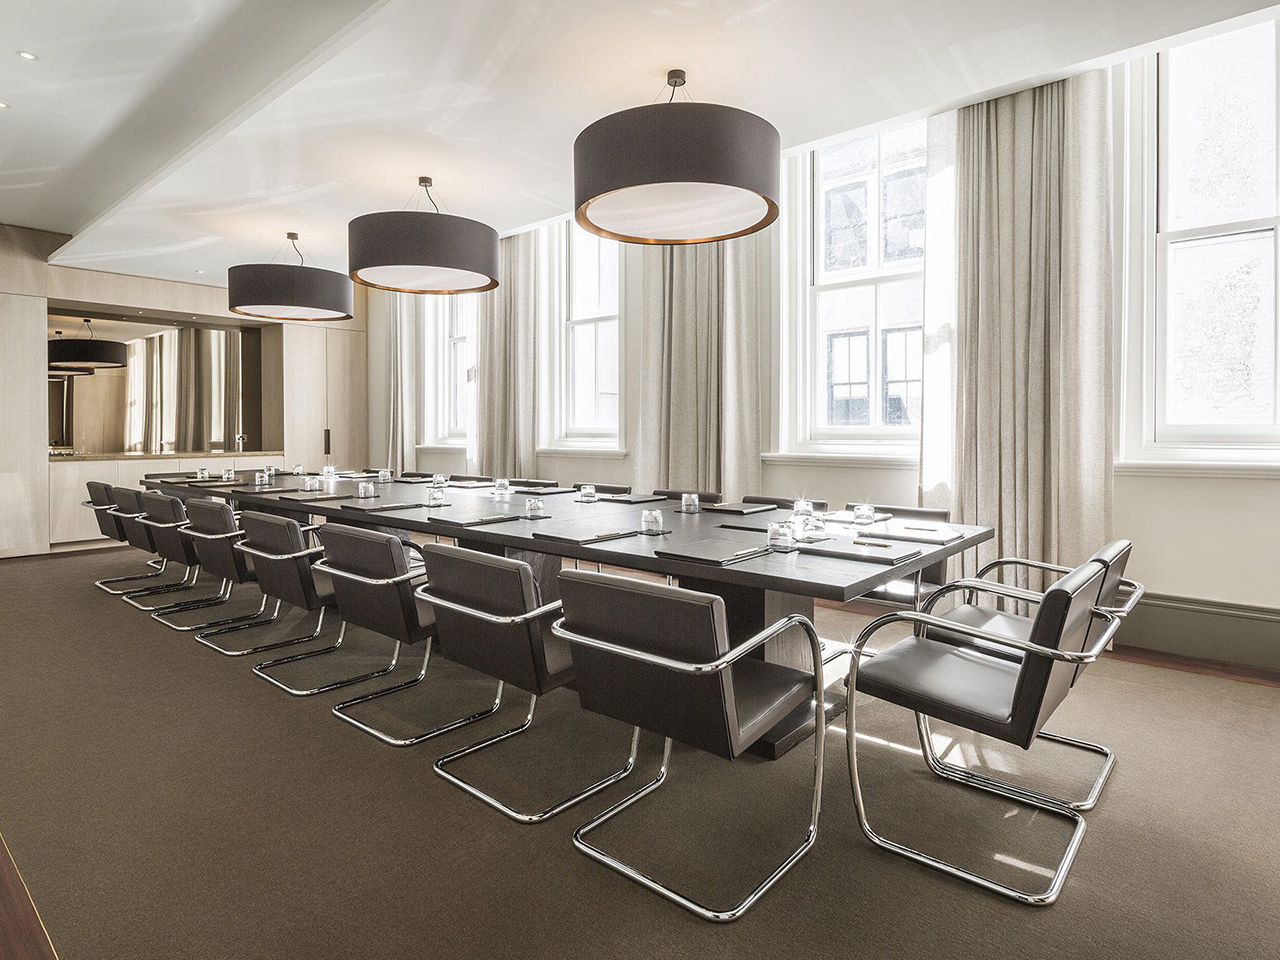 Chairs And Table Inside The Boardroom With Big Round Hanging Lights And Glass Windows